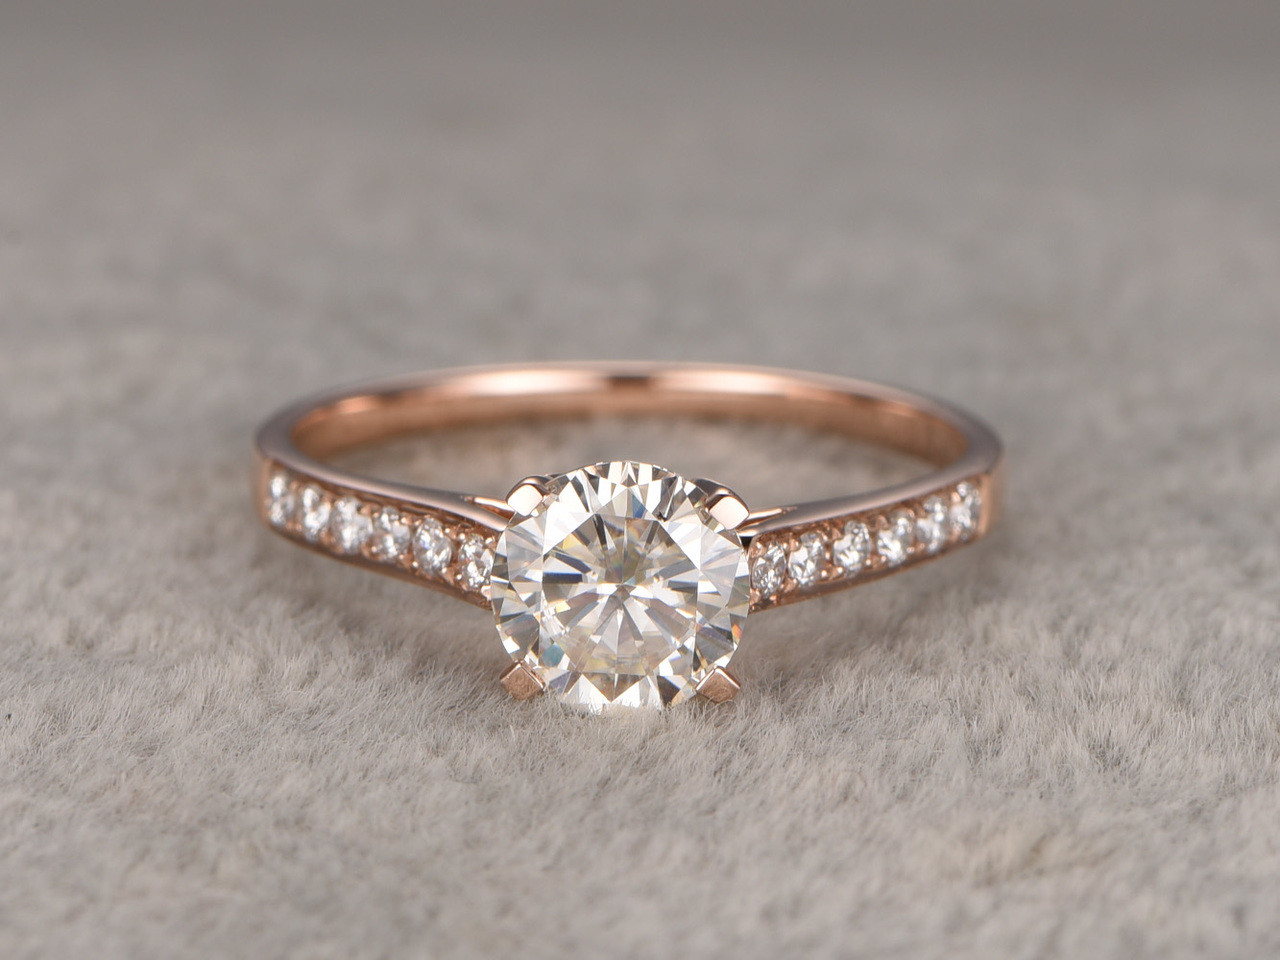 ring engagement gold set prong moissanite rings halo bbbgem diamond prongs round white wedding